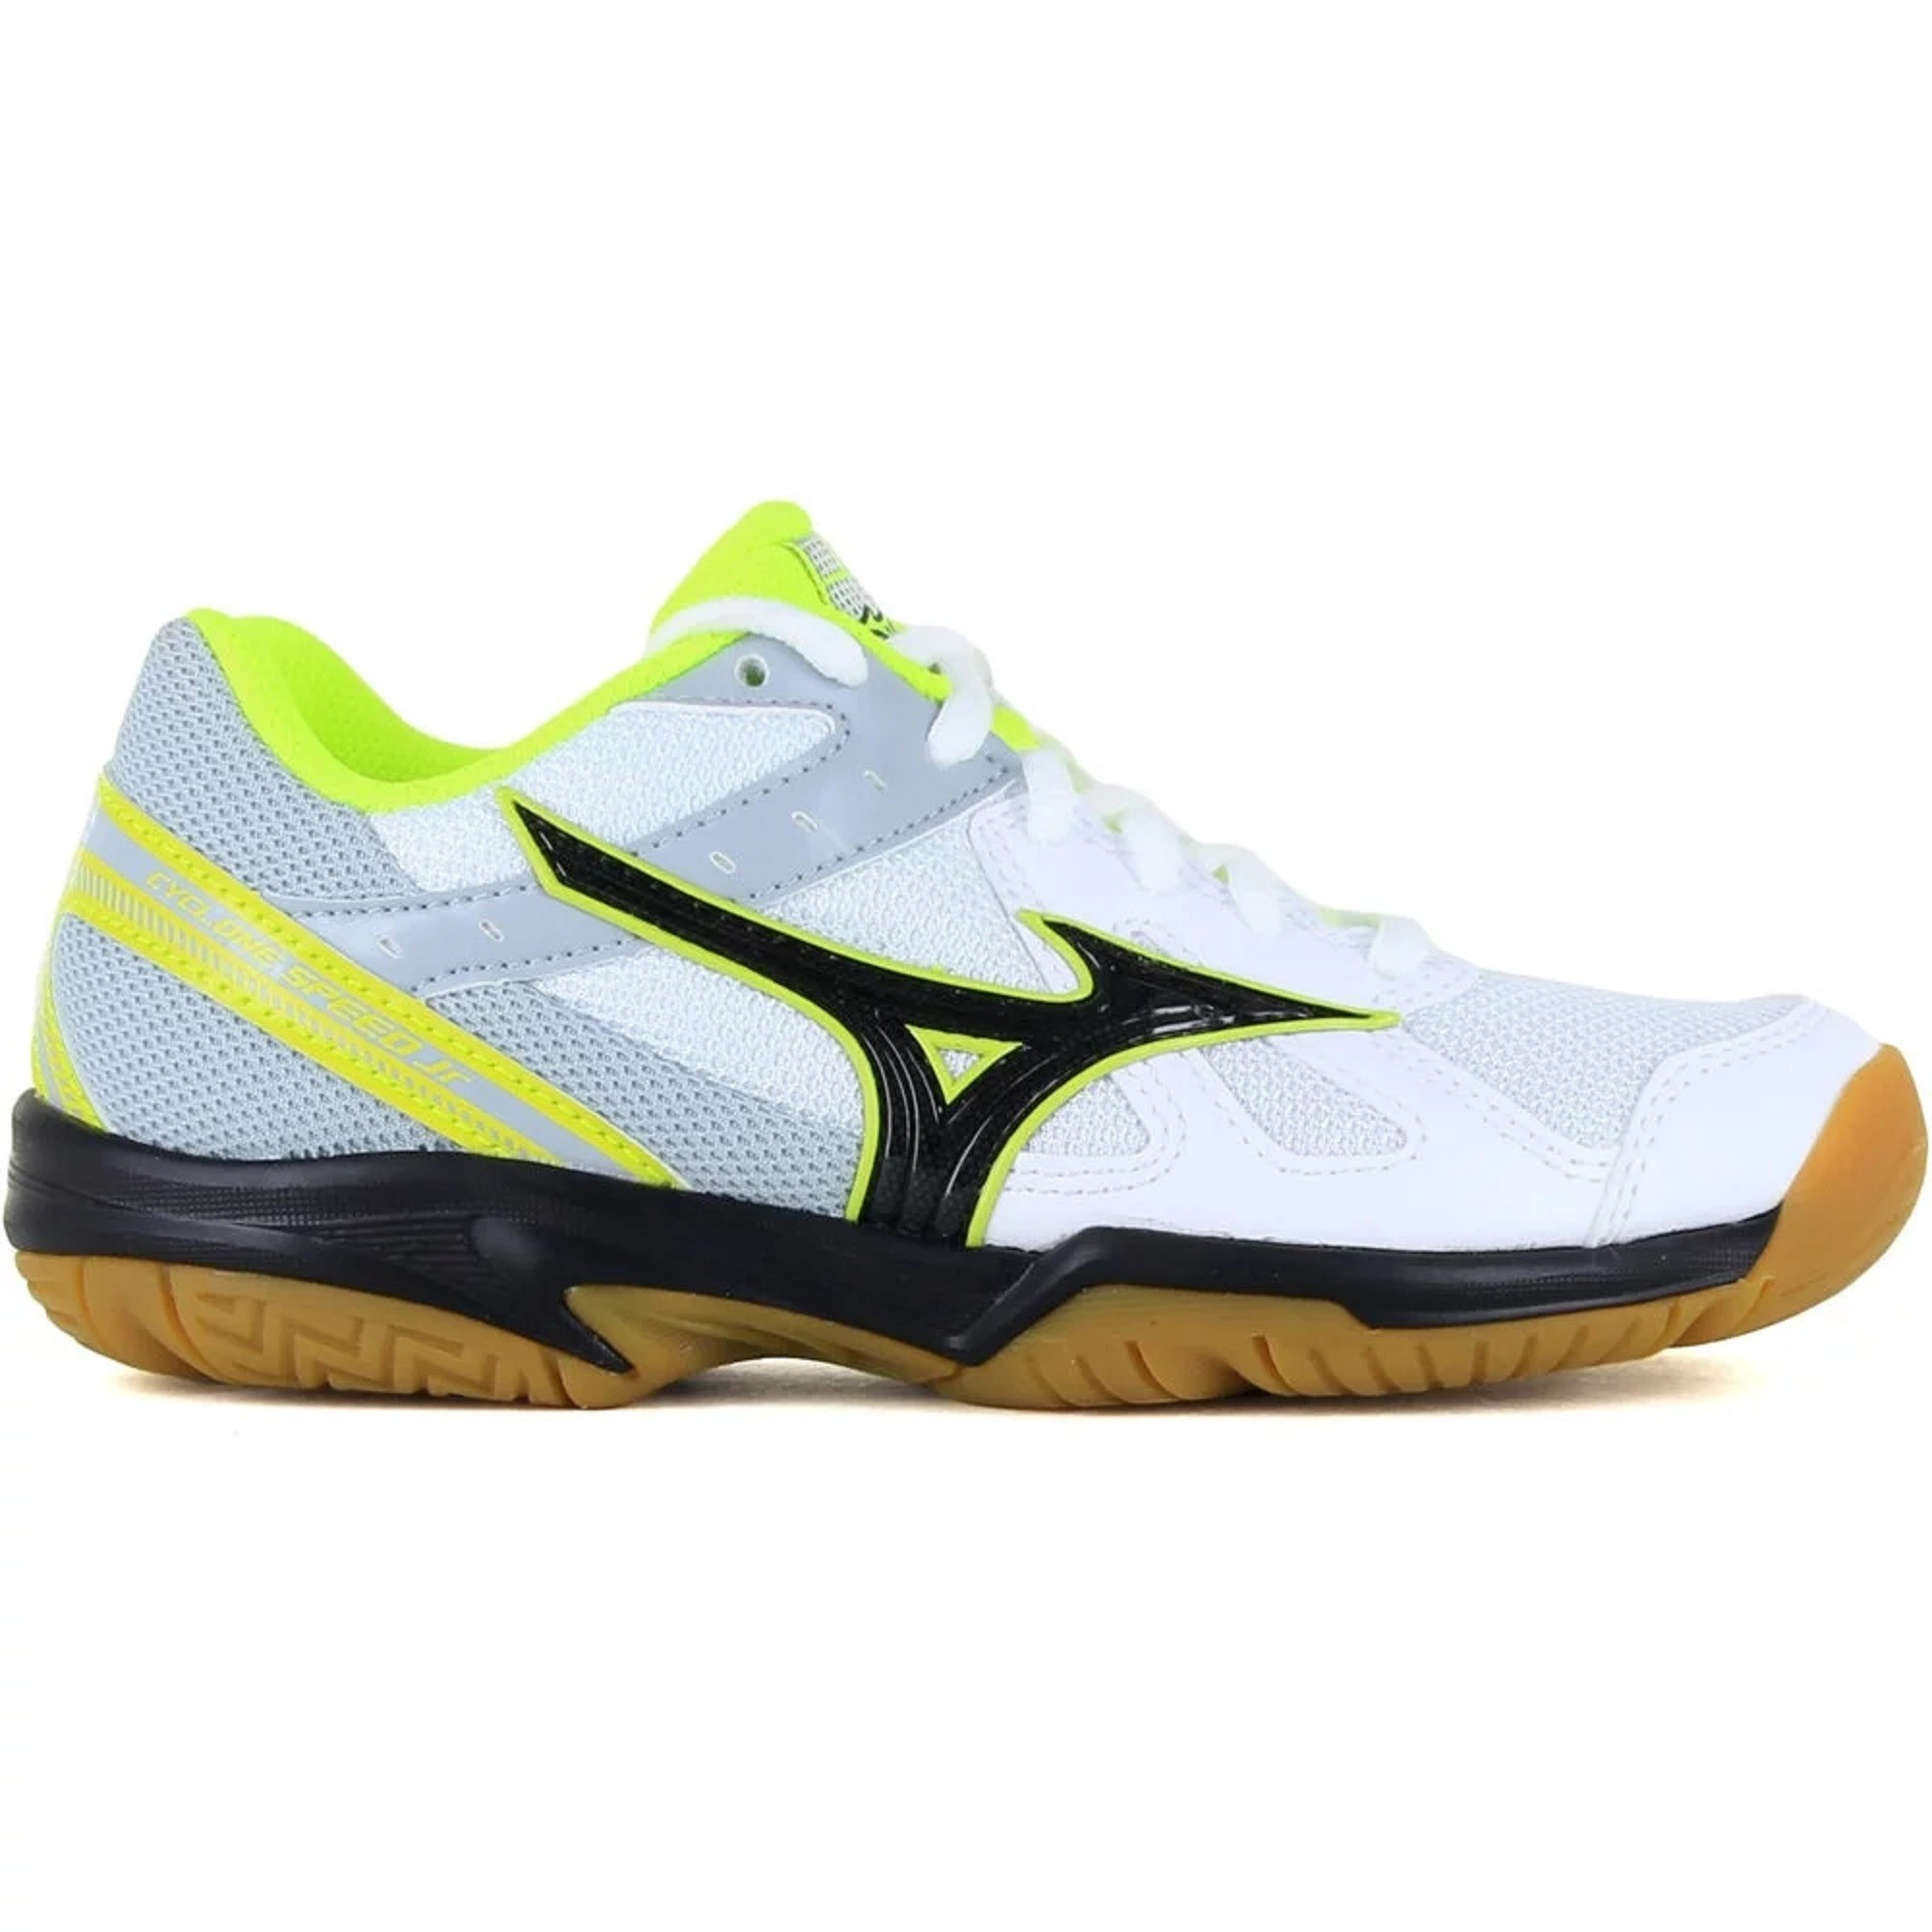 Zapatilla Mizuno Cyclone Speed Jr V1GD1810 44 Deportes